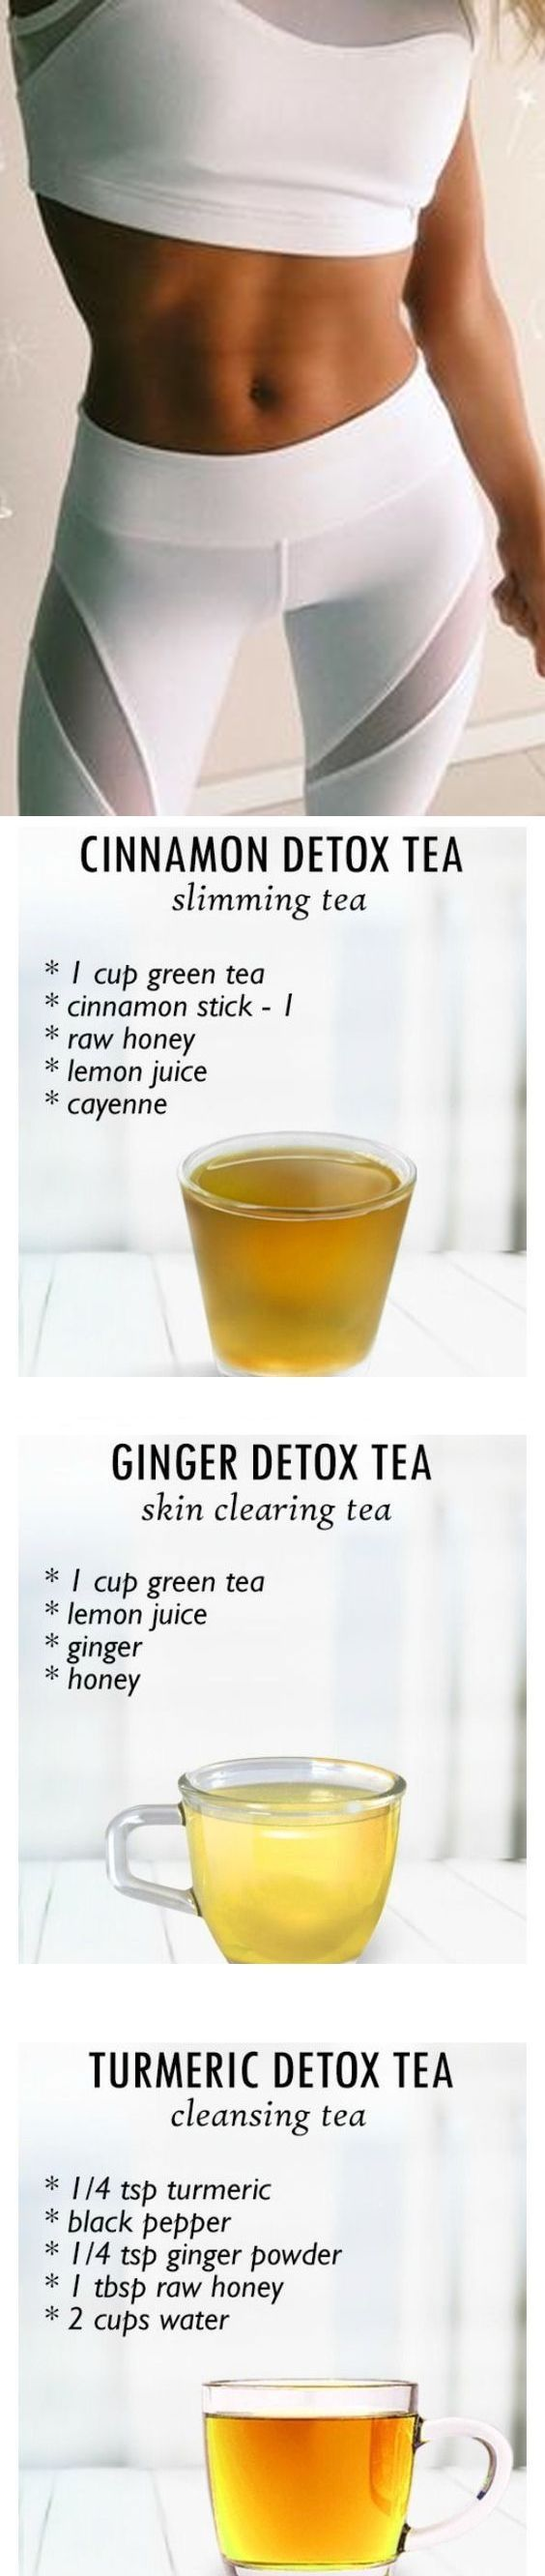 Fat Burner Teas For Weight loss   6 Fat Burning Natural Herbs For Weight Loss http://weightlosssucesss.pw/the-5-commandments-of-smart-dieting/ #weightlosstips